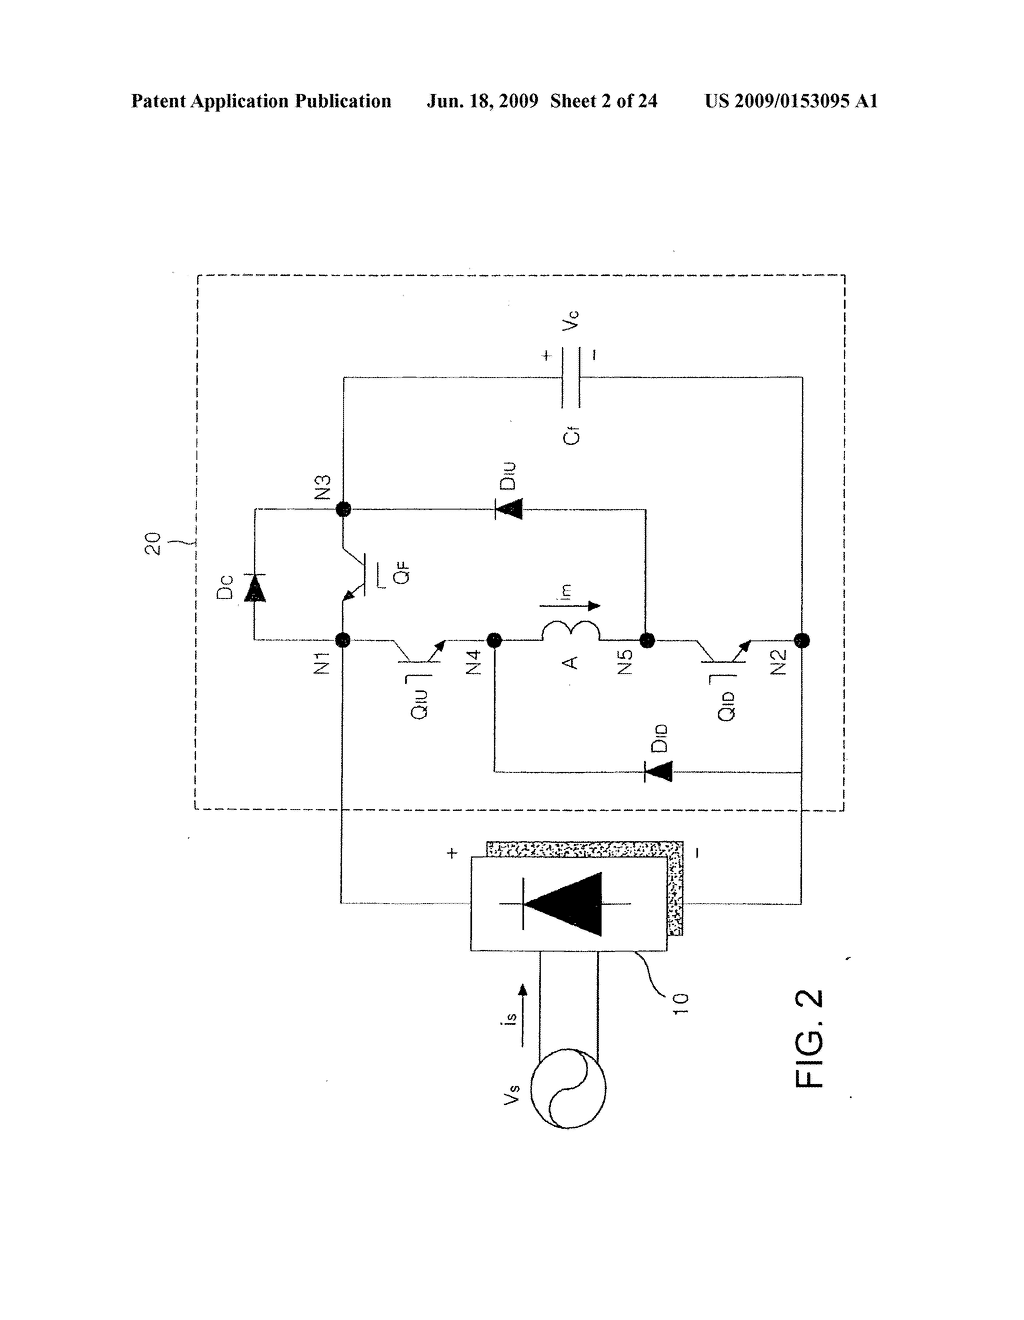 Driving Circuit For Single Phase Switched Reluctance Motor And Diagram Method Thereof Schematic Image 03